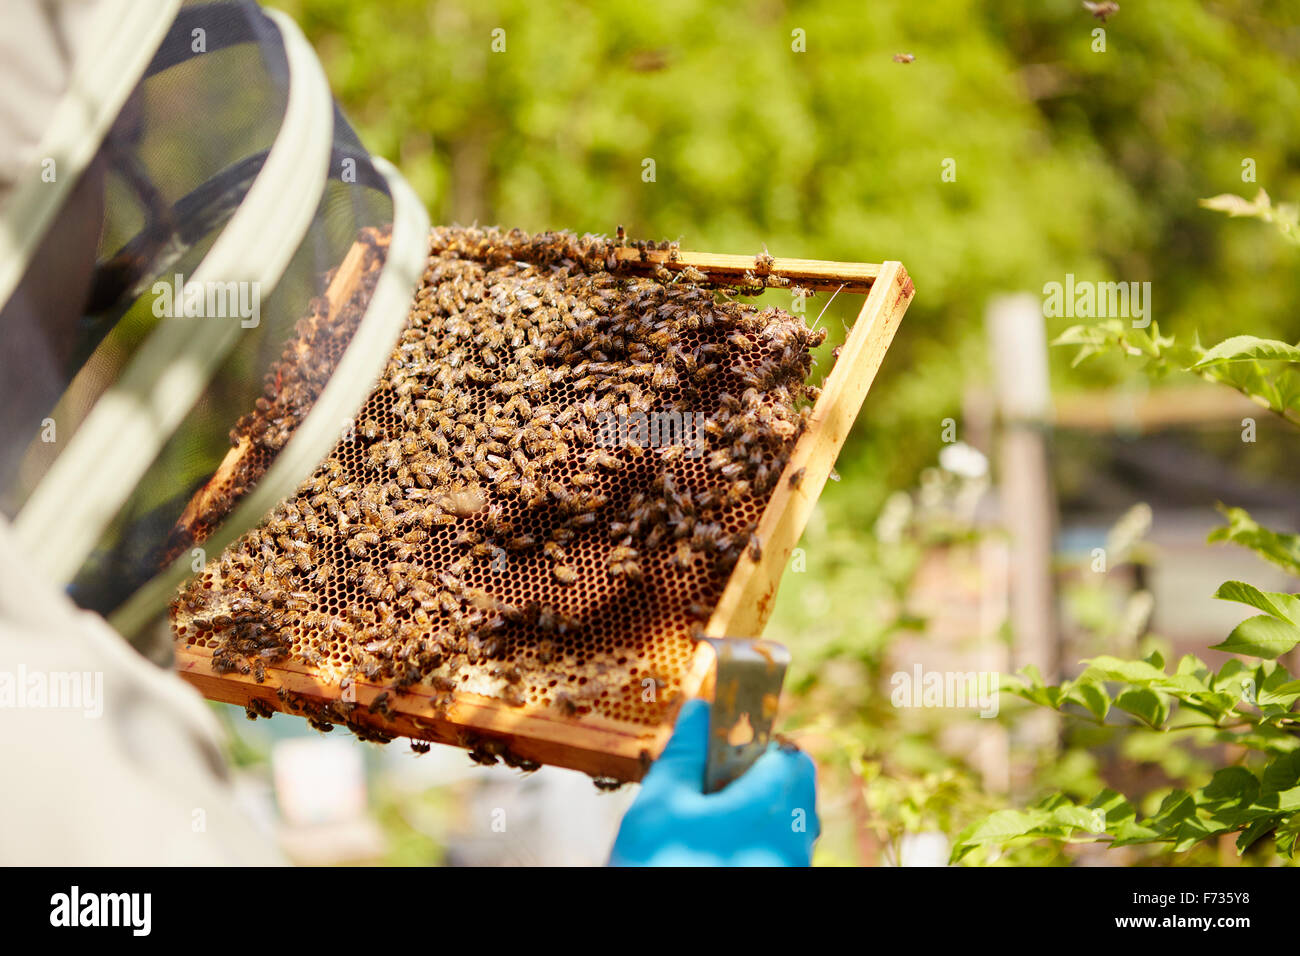 A beekeeper in a suit, with his face covered, holding a honeycomb frame covered in bees. - Stock Image